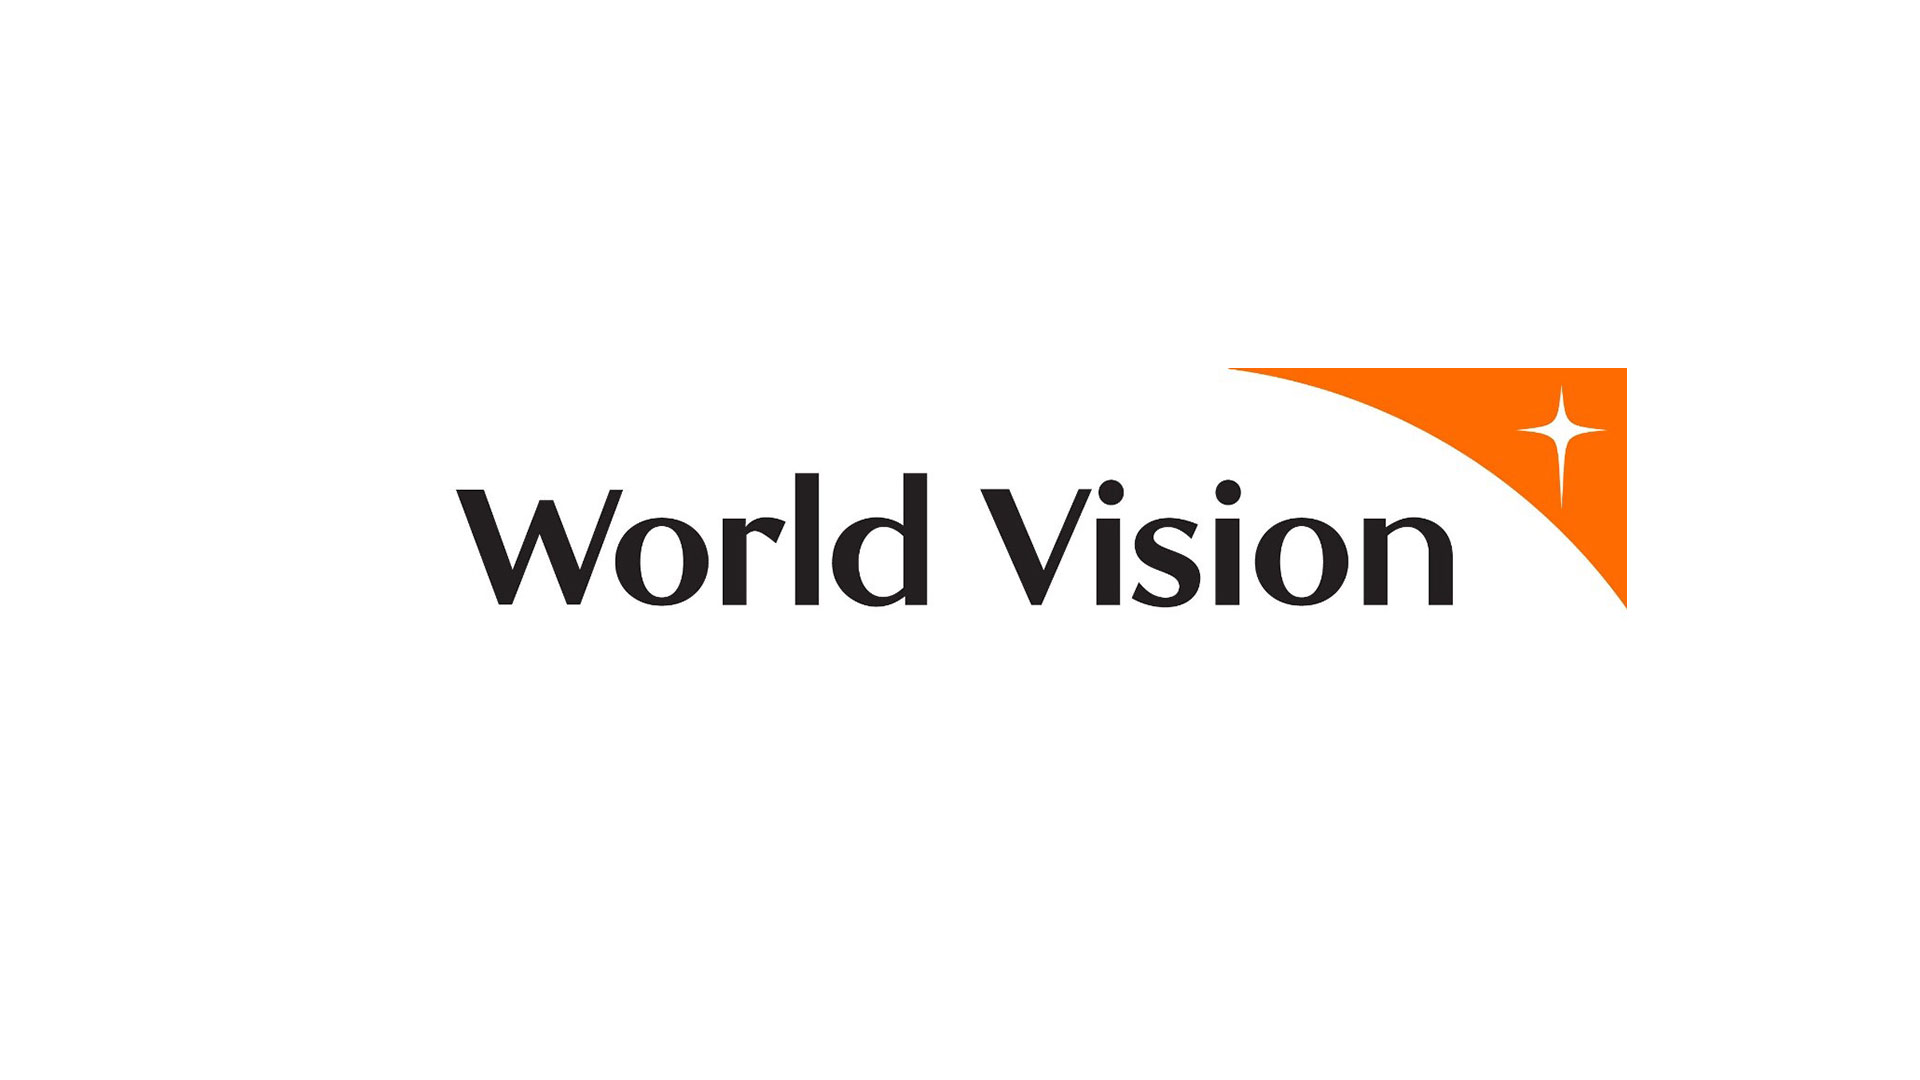 We partner with World Vision. Read on to learn more.